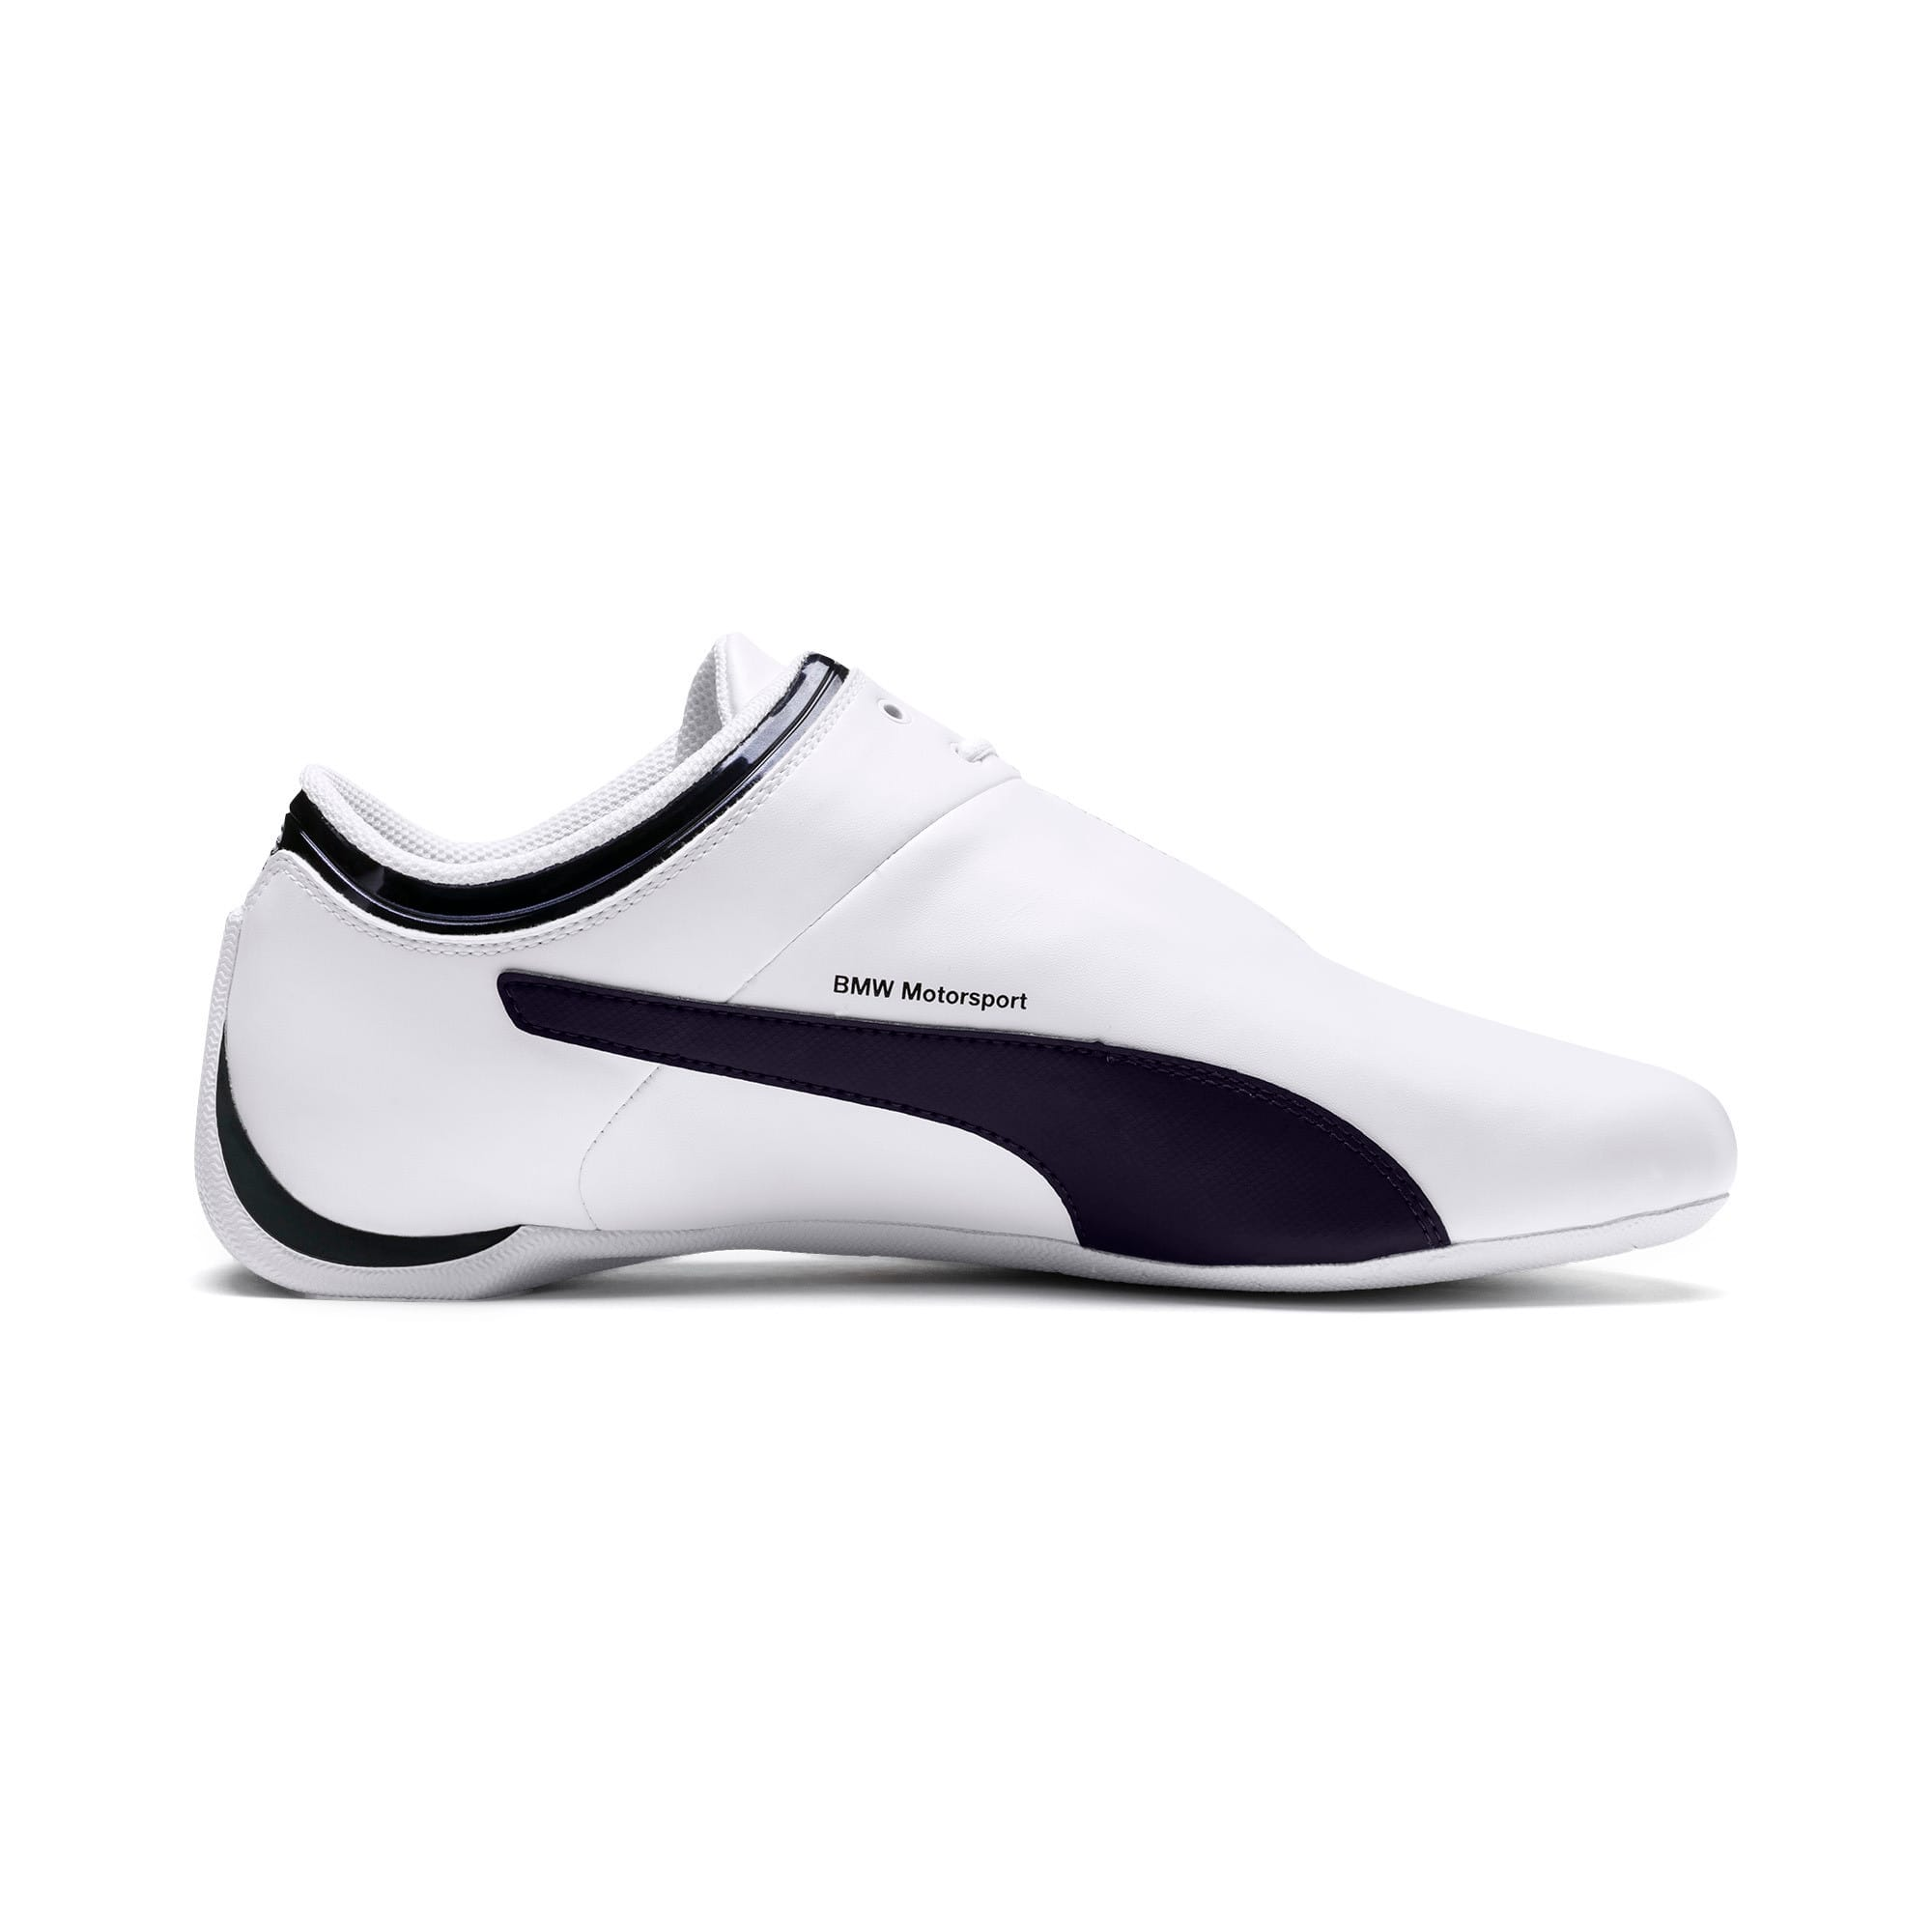 Thumbnail 5 of Scarpe da ginnastica BMW Motorsport Future Cat, Puma White-Team Blue, medium